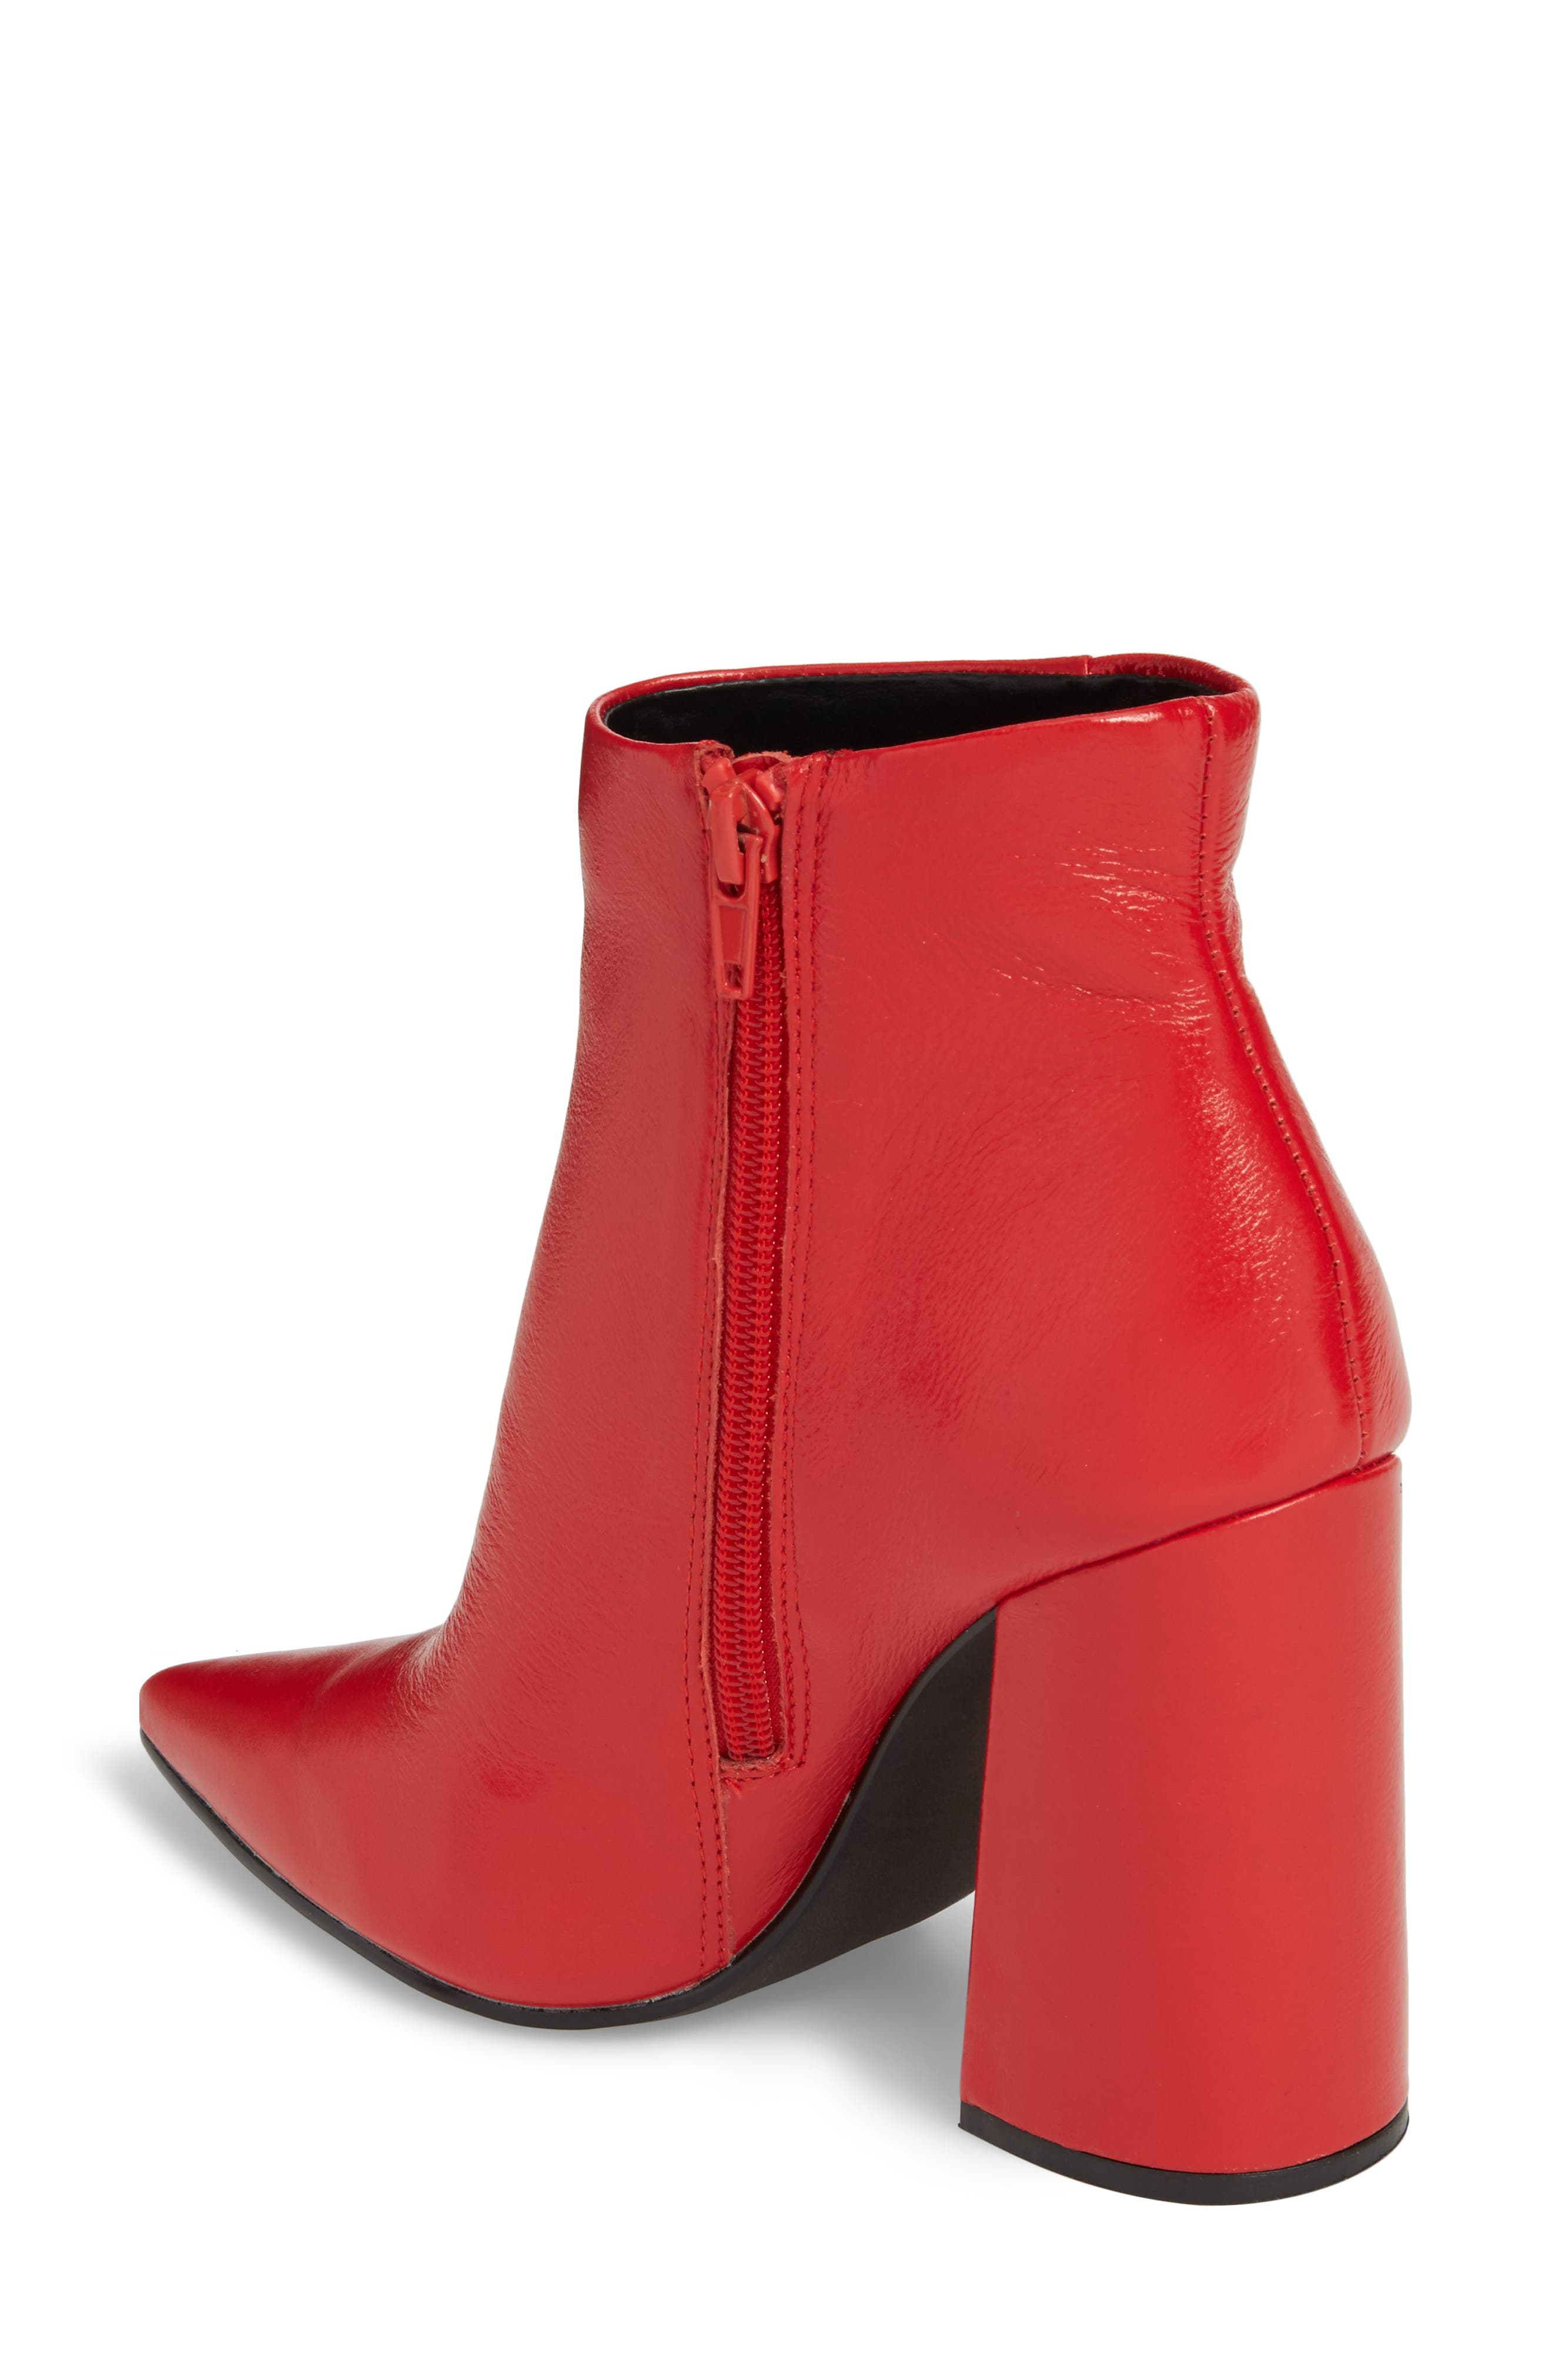 Justify Flared Heel Bootie,                             Alternate thumbnail 4, color,